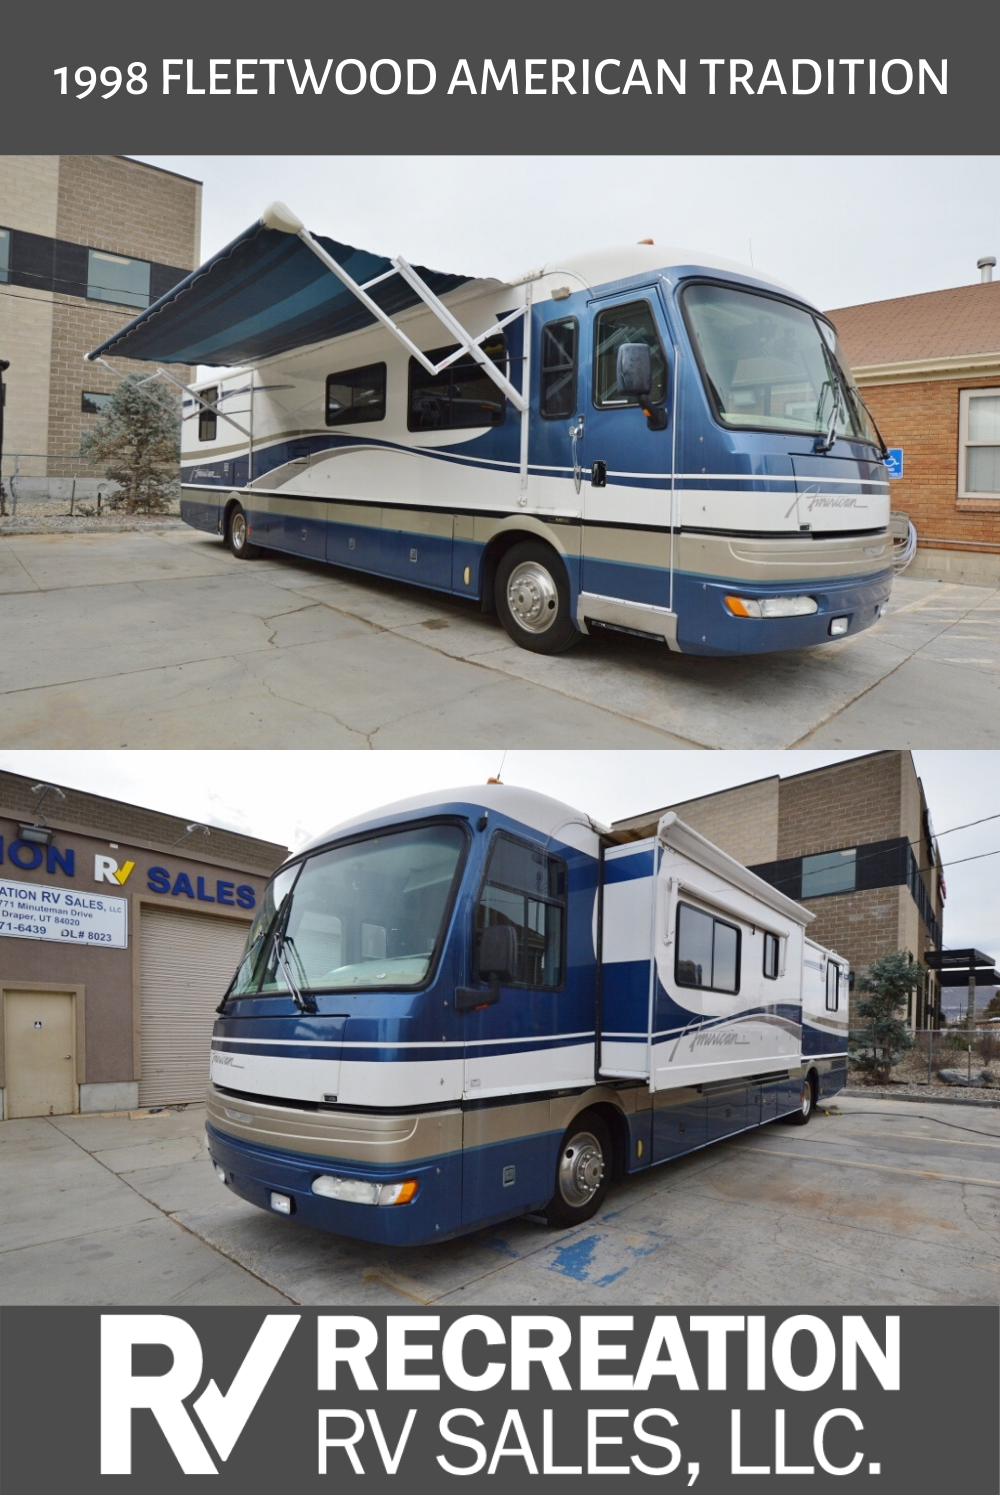 1998 Fleetwood American Tradition 40tvs Rv For Sale In 2020 Air Ride Fleetwood Cummins Diesel Engines